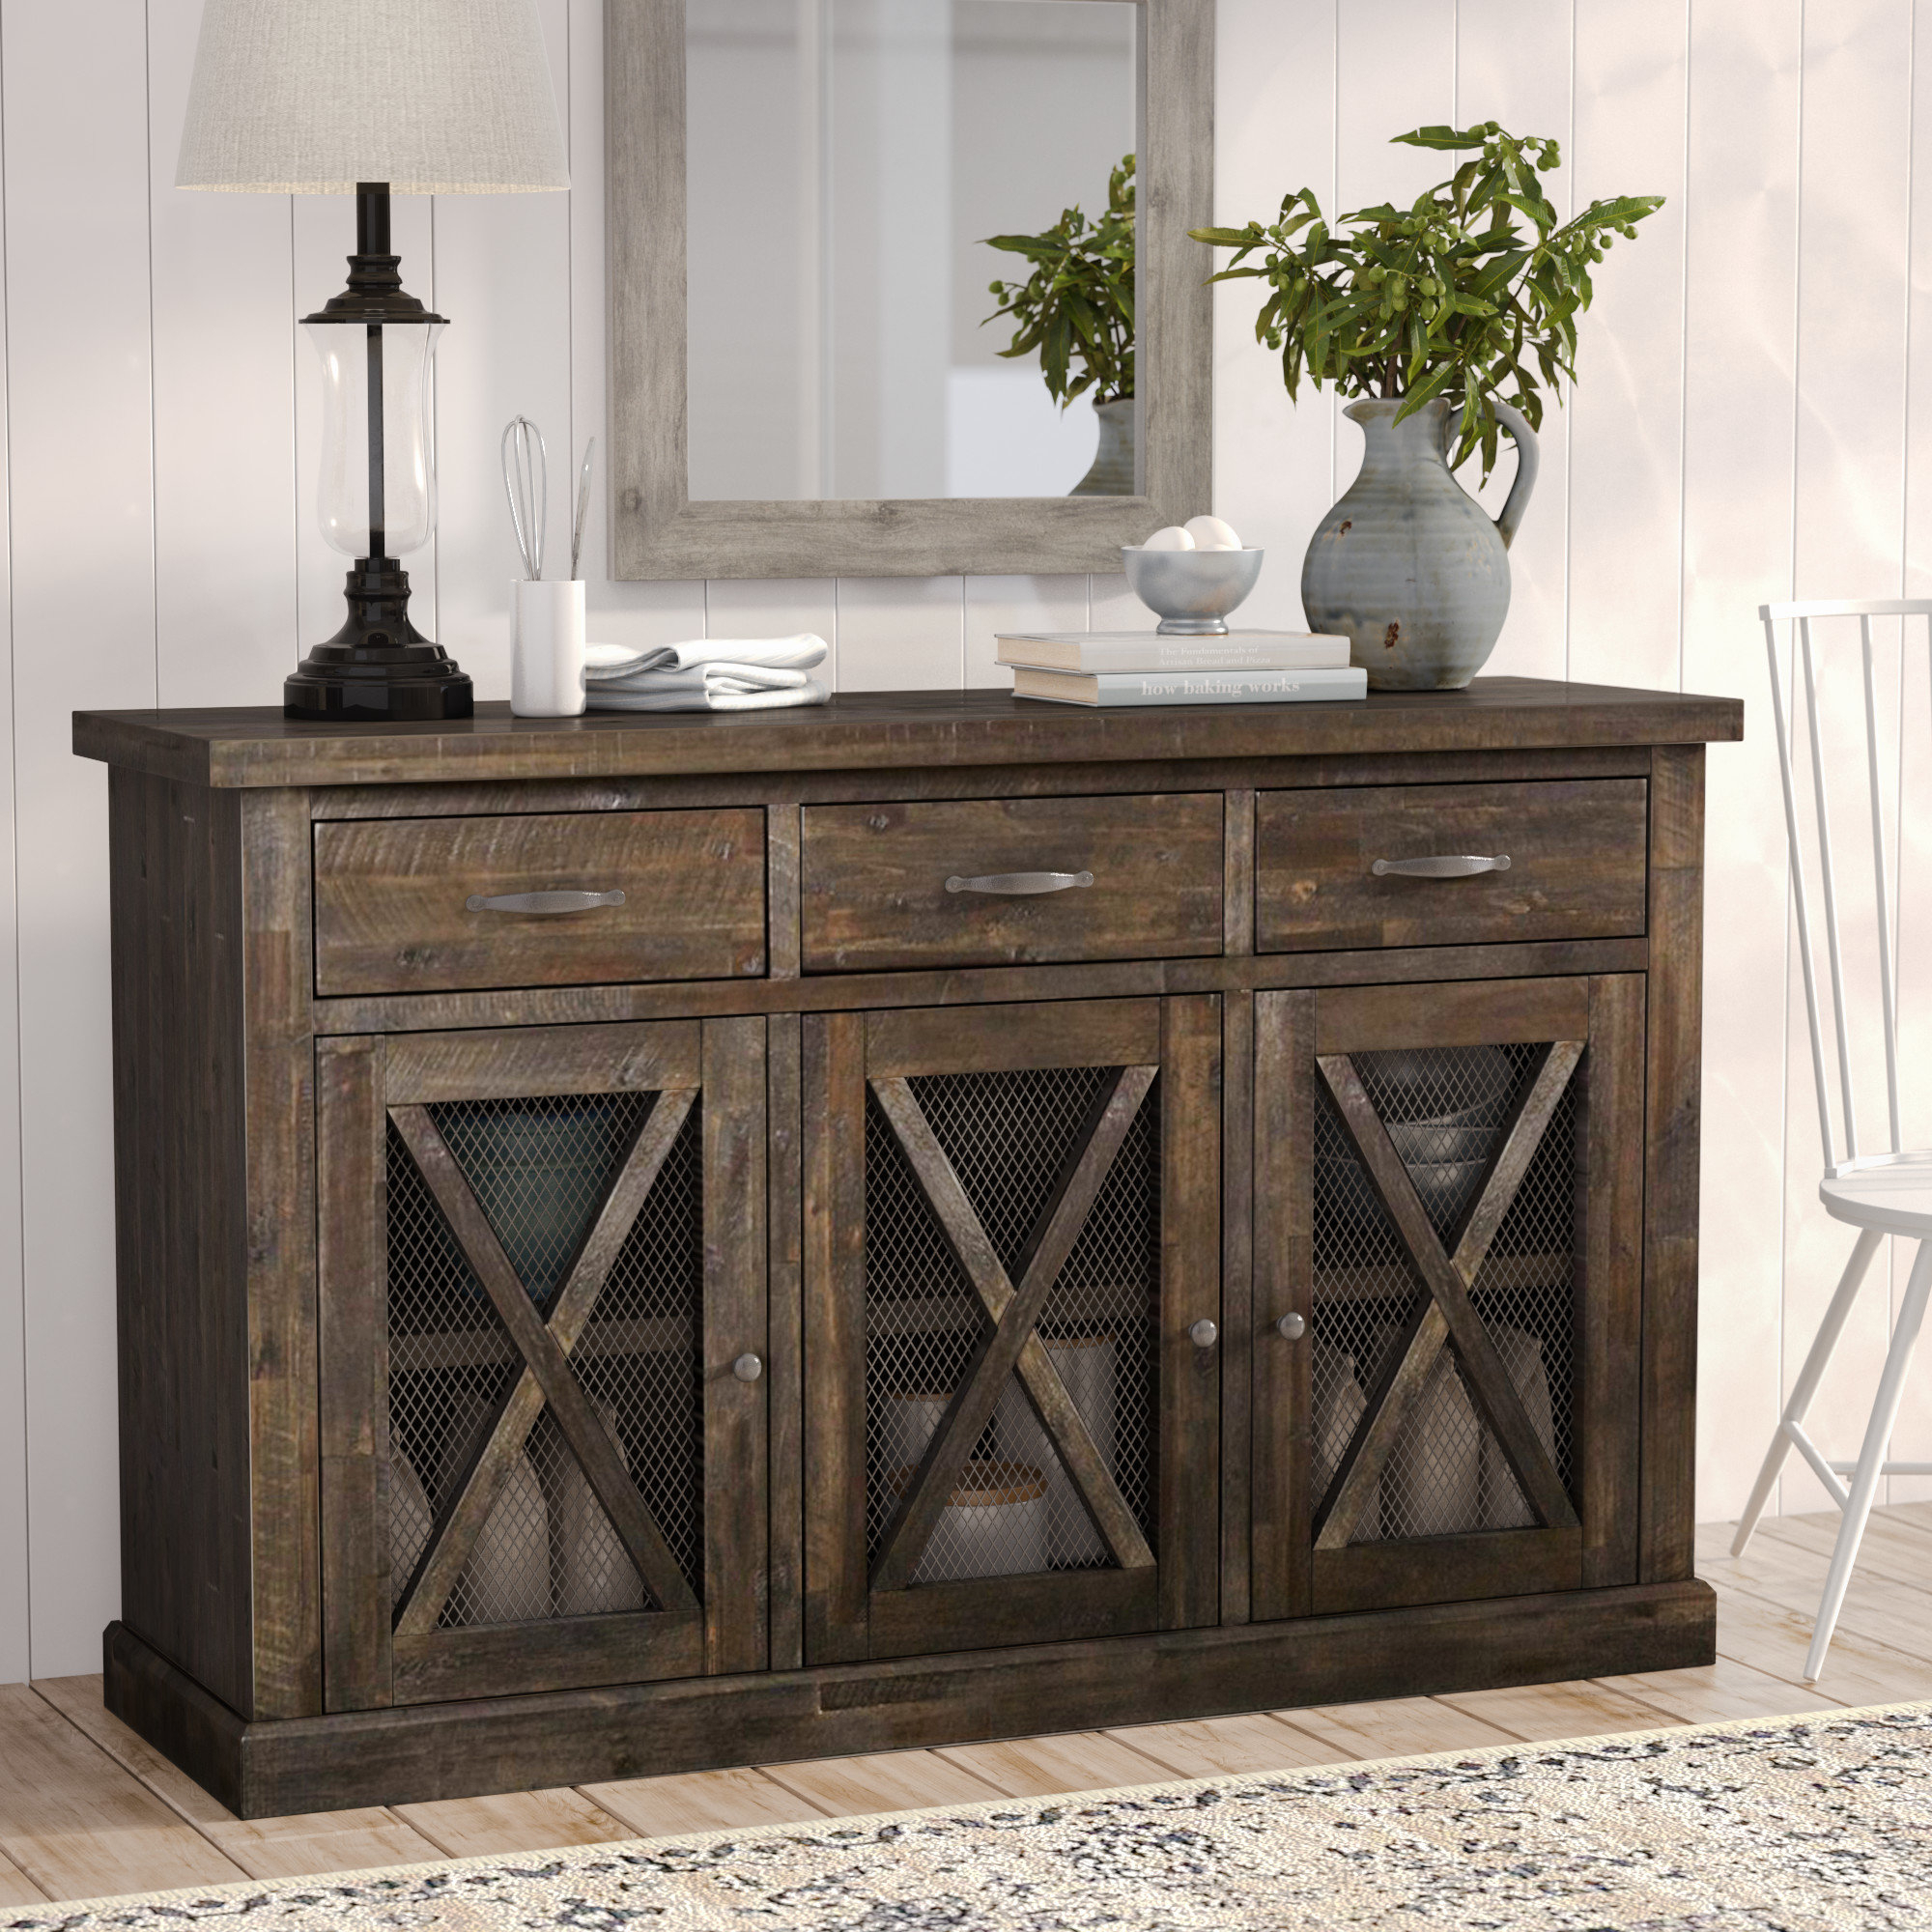 Colborne Sideboard With Recent Alegre Sideboards (#5 of 20)